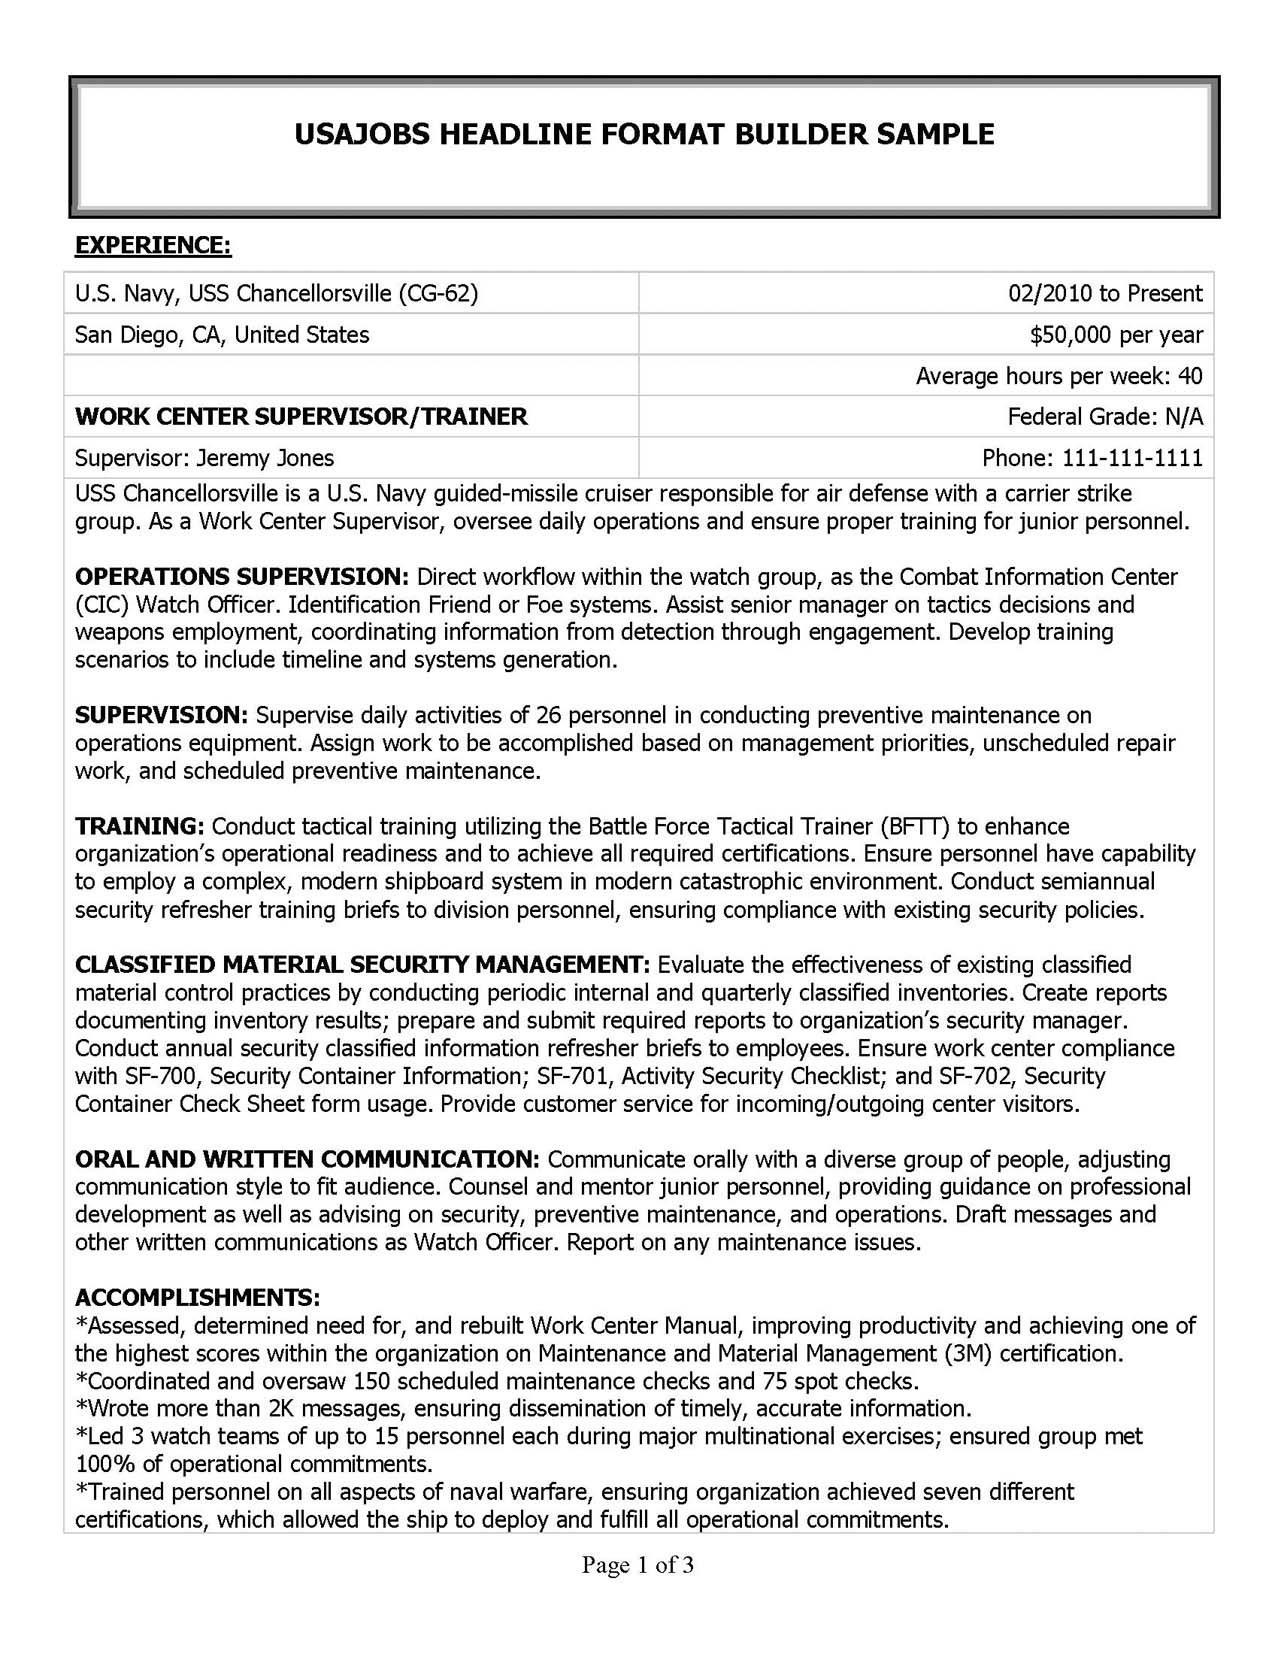 best professional resume writing services san antonio the in tx federal writers mental Resume Federal Resume Writers San Antonio